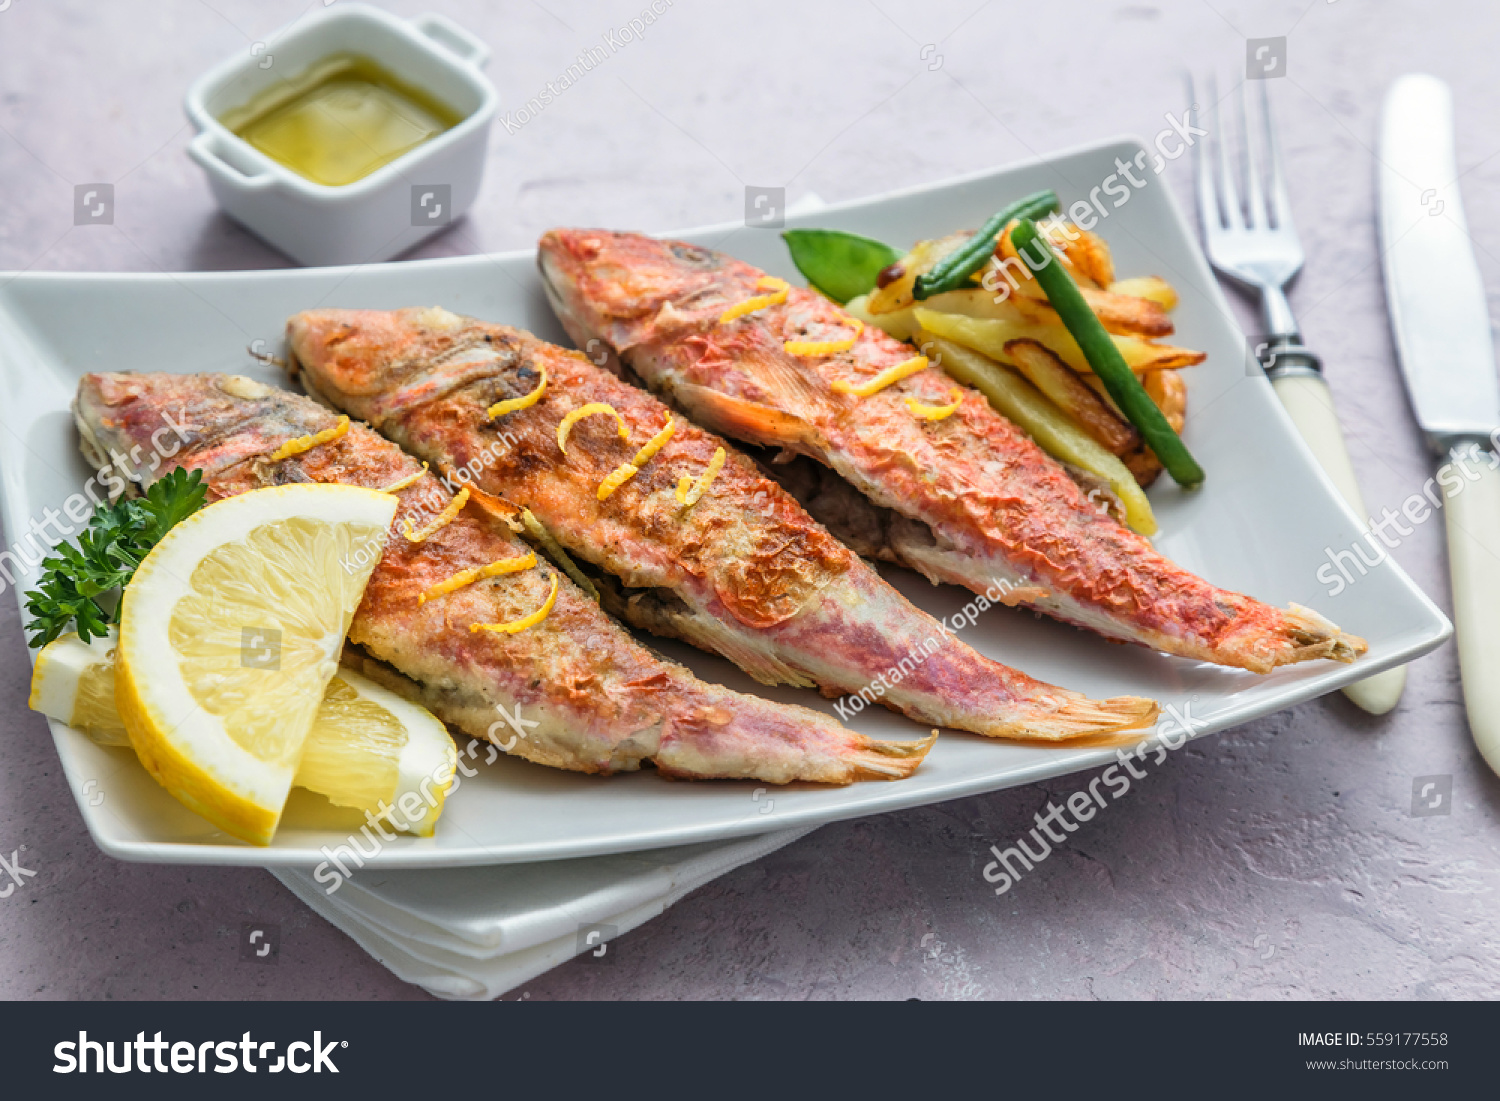 Fish mullet - a small delicacy